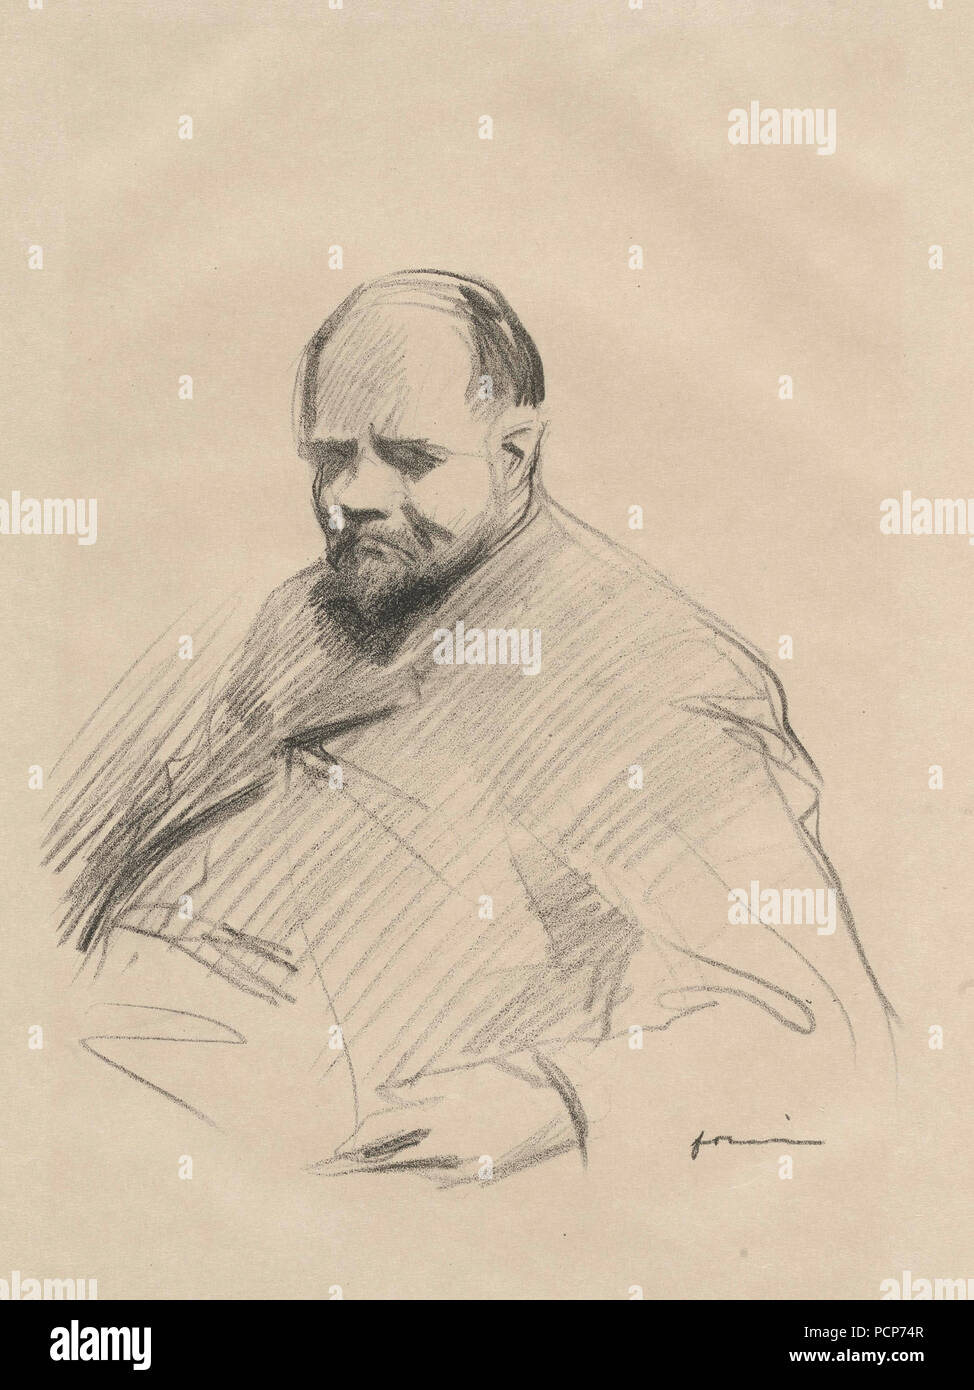 Portrait of Ambroise Vollard (1865-1939), c. 1910. Private Collection. - Stock Image